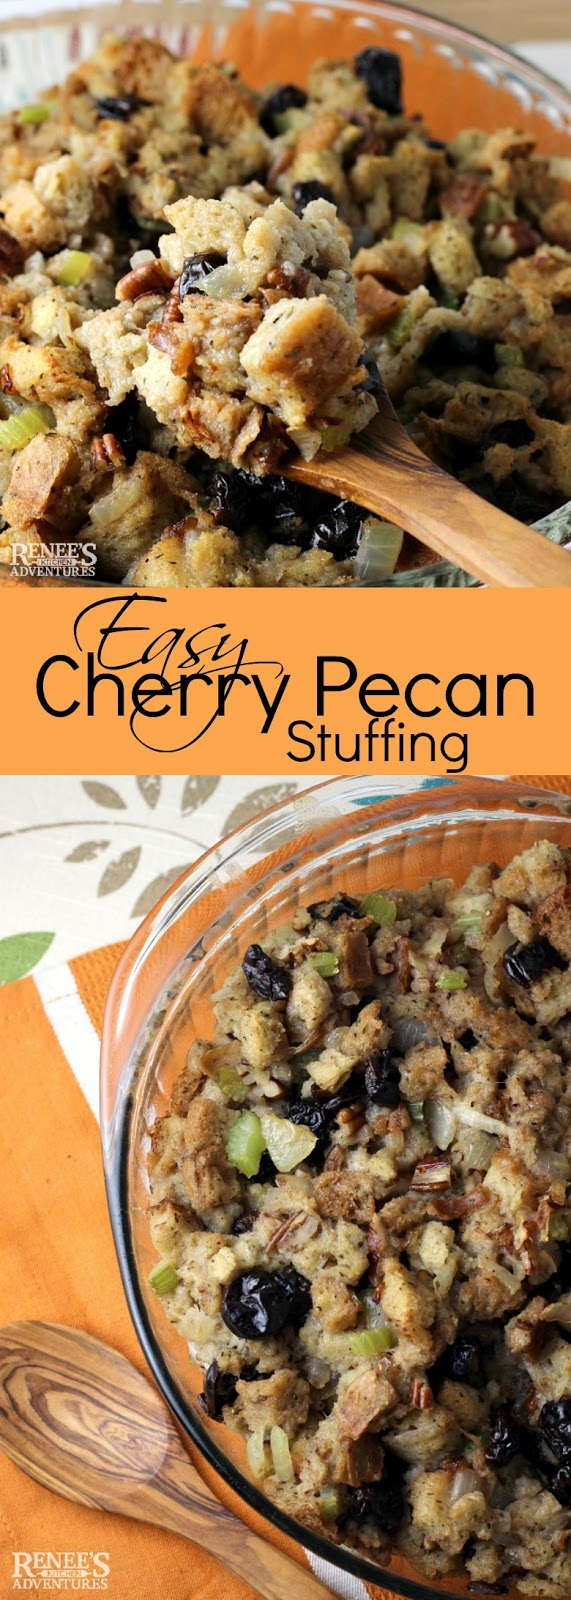 Easy Cherry Pecan Stuffing | by Renee's Kitchen Adventures - Easy recipe for stuffing or dressing made with tart dried cherries and crunchy pecans perfect side dish for chicken, turkey, pork, or beef! Makes a great holiday side dish! #stuffing #easyrecipe #dressing #driedcherries #pecans #Thanksgiving #Holidaysidedish